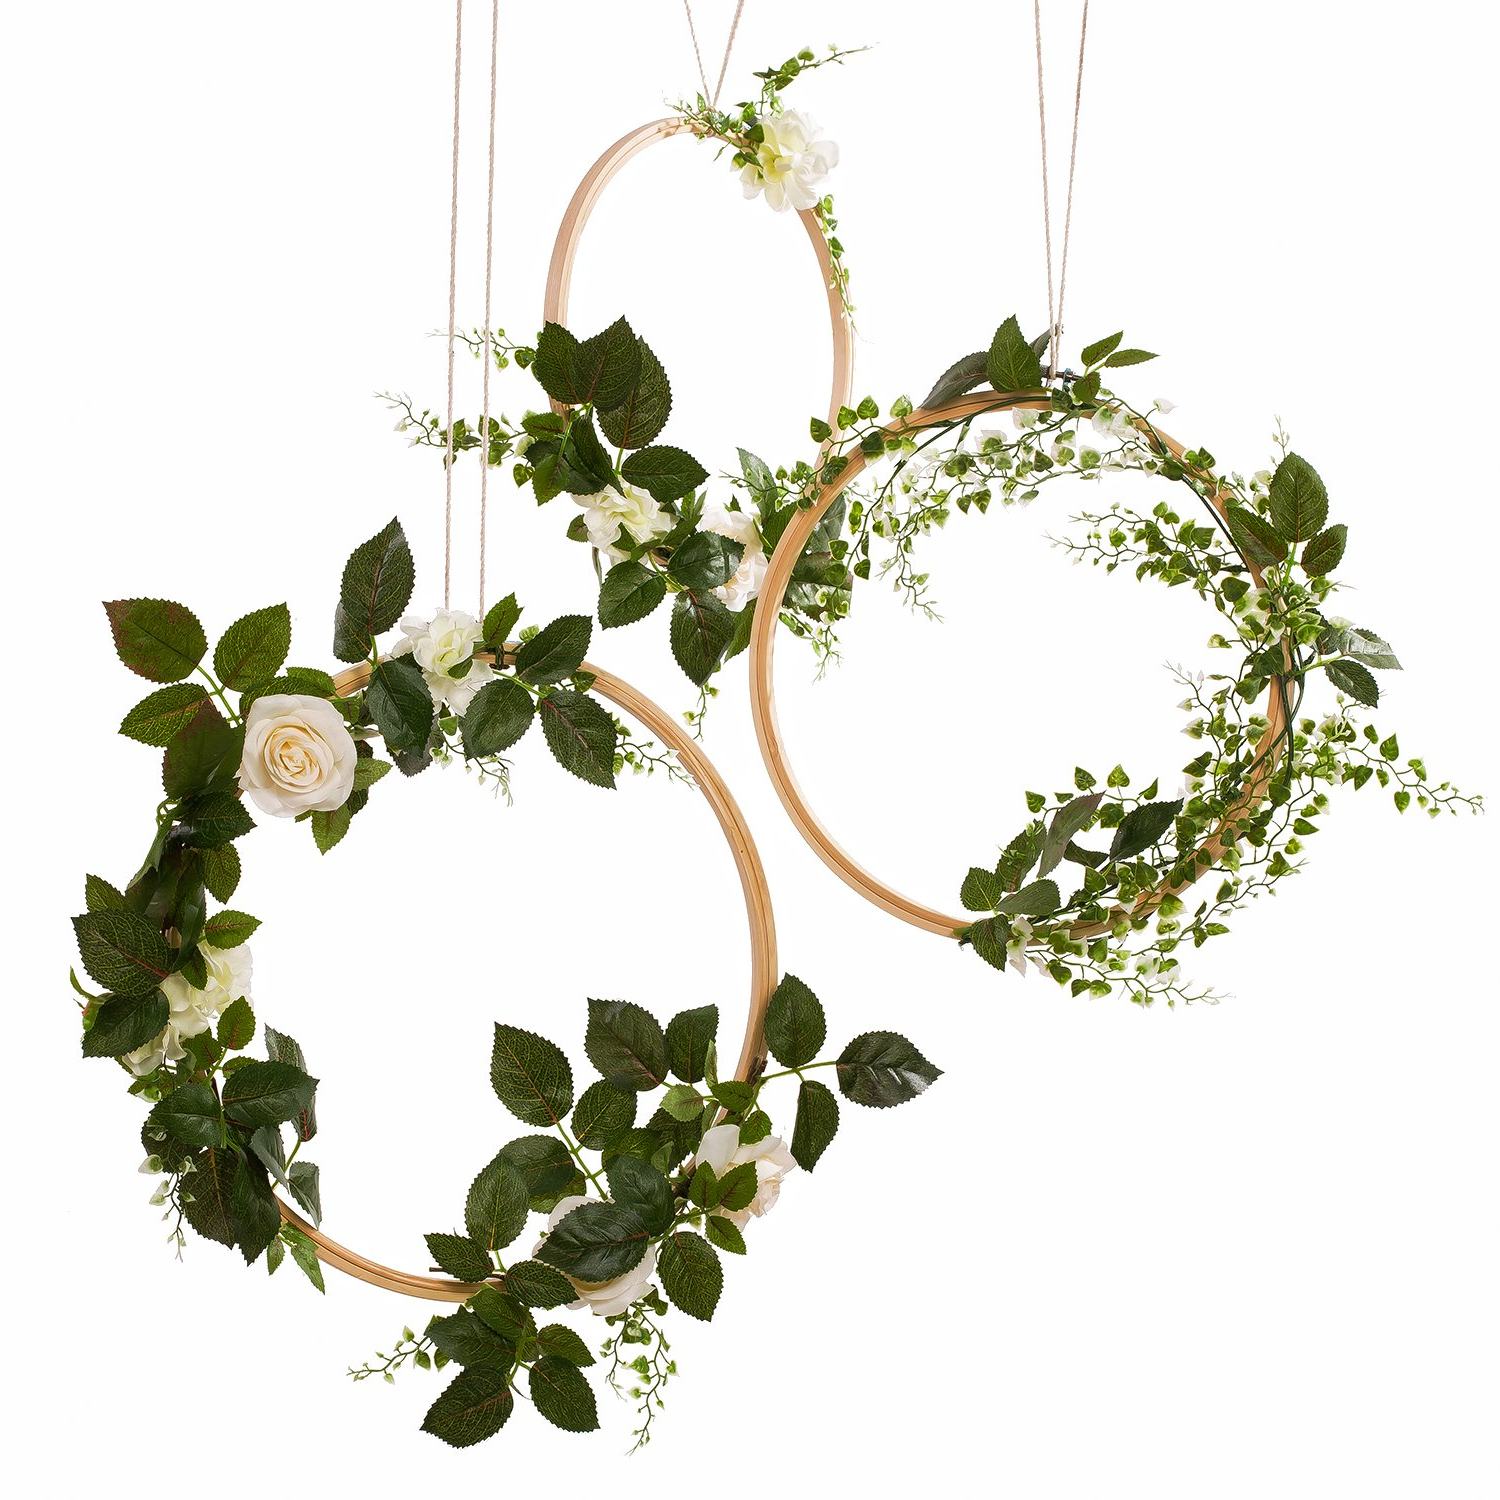 Amazon: Ling's Moment Hoop Wreath, Greenery Wedding Floral Vine Intended For Preferred Three Flowers On Vine Wall Decor (View 2 of 20)